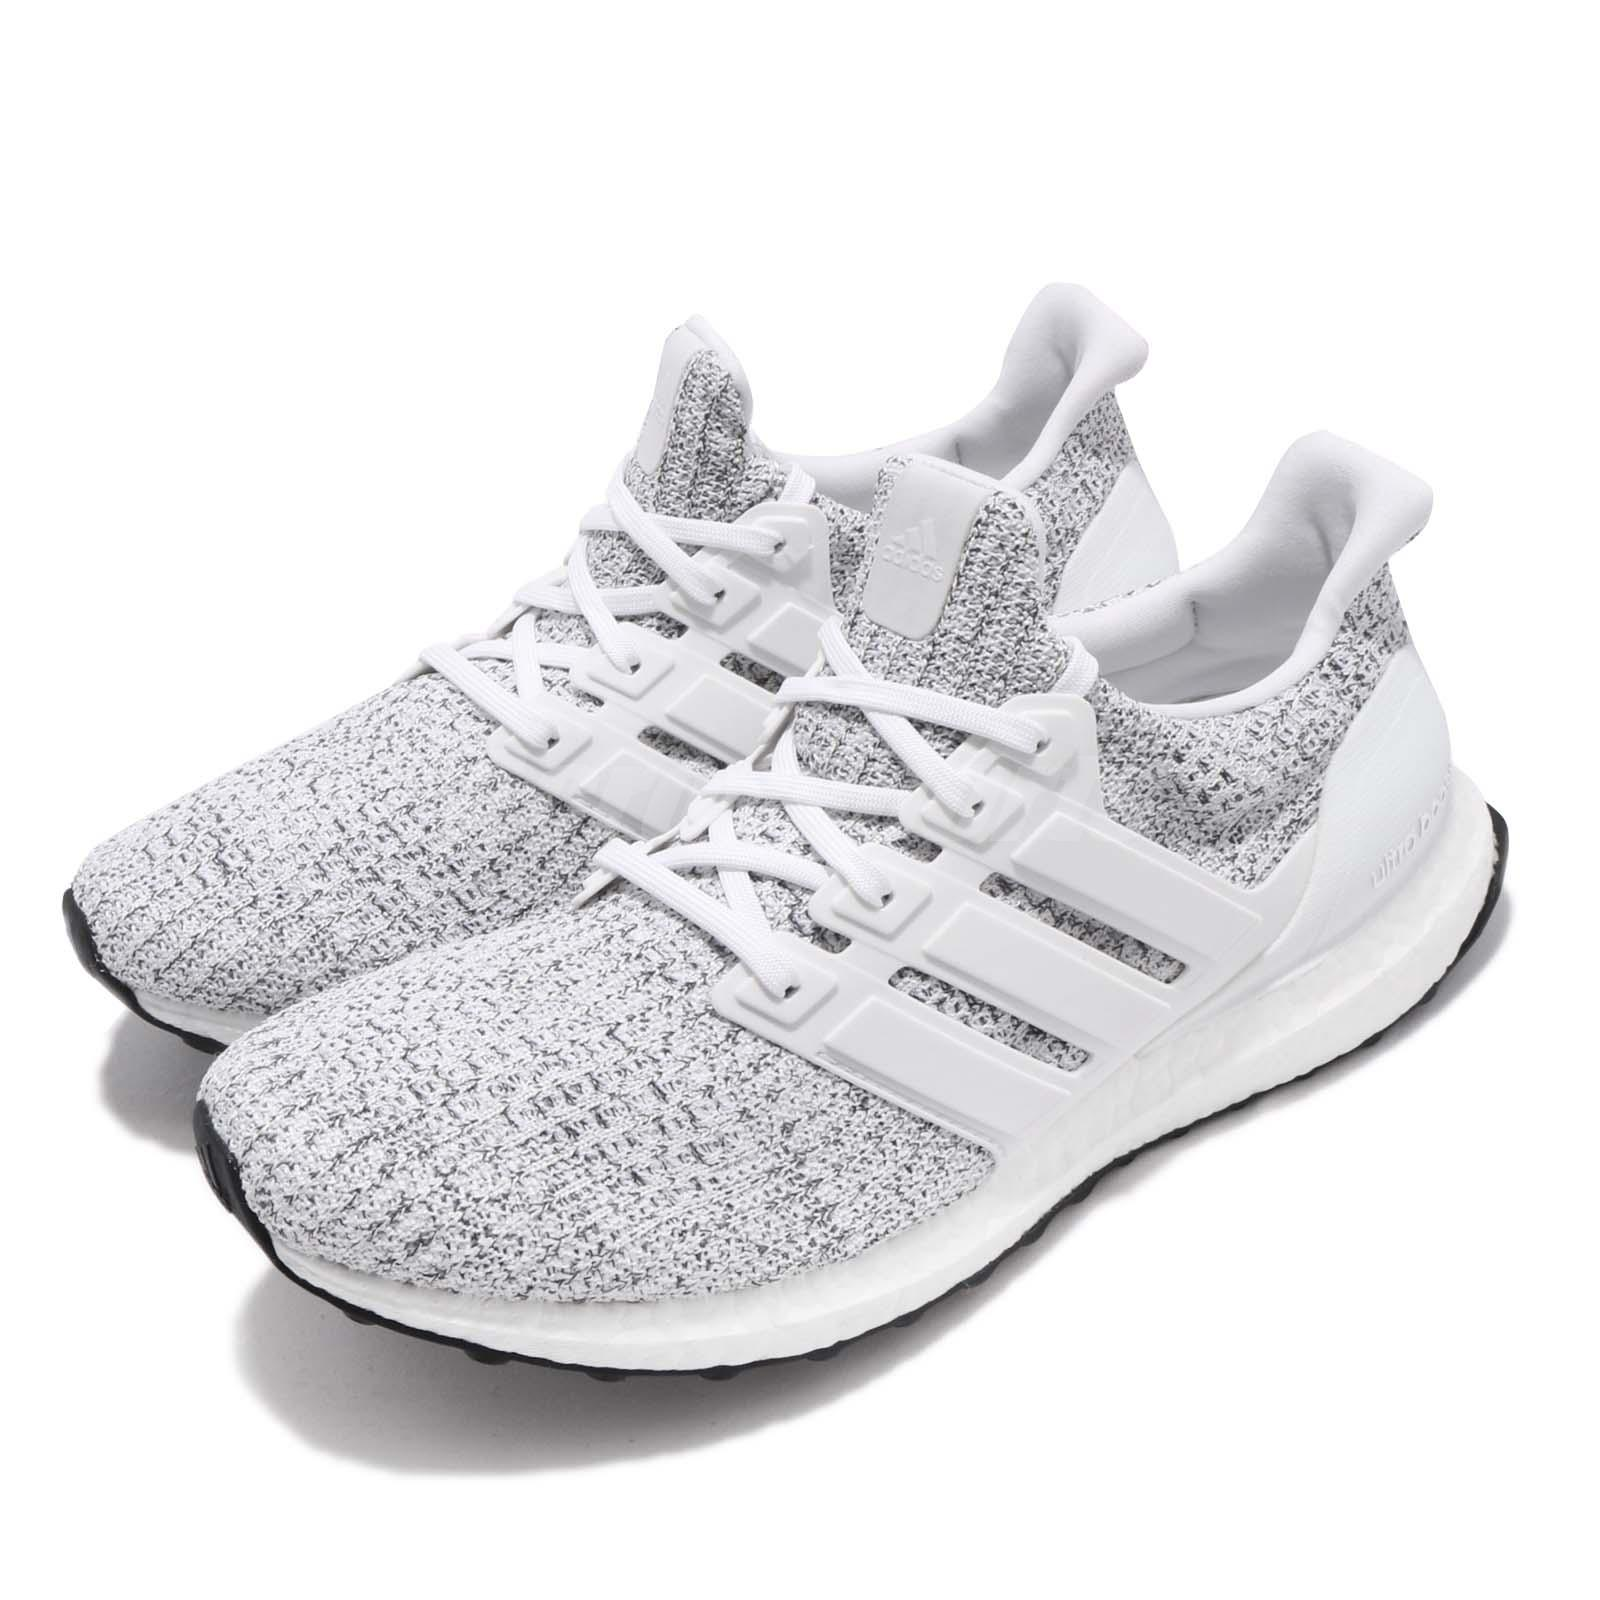 f70e904e2 adidas UltraBOOST Non Dyed White Grey Men Running Casual Shoes ...